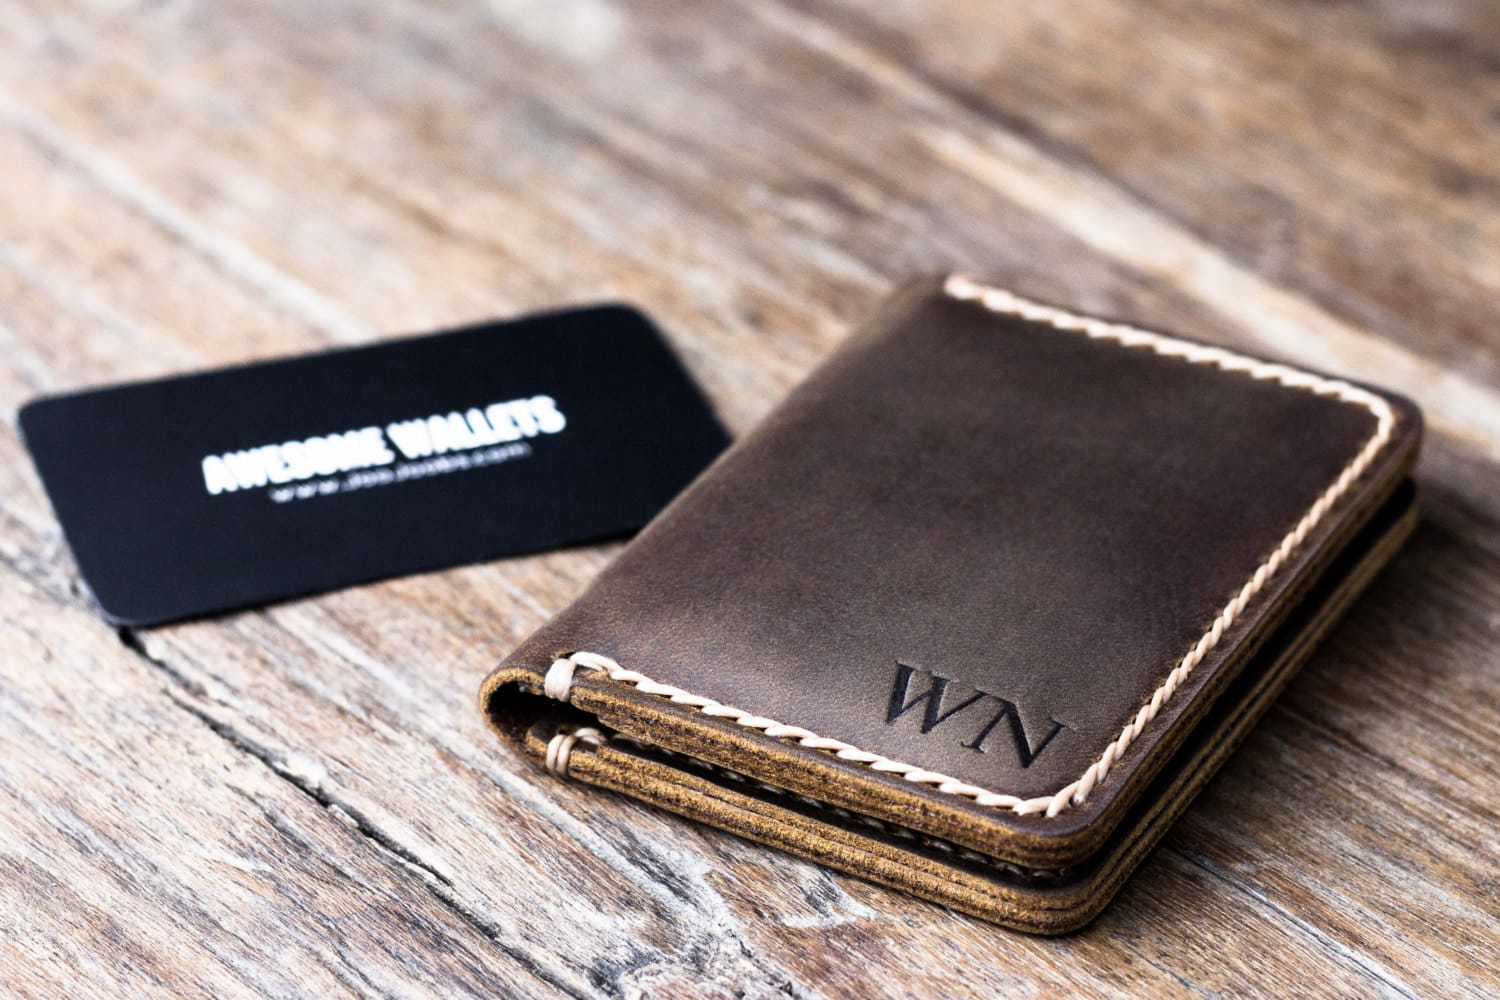 Men's Wallets: Free Shipping on orders over $45 at megasmm.gq - Your Online Wallets Store! Suvelle Men's Leather Slim Bifold Wallet with Removable Flip-up ID Window. Reviews. SALE. Zodaca Men's Slim Bifold Leather Wallet Purse Credit Card Holder Executive Business Card Case with Removable Money Clip. 10 Reviews. SALE.